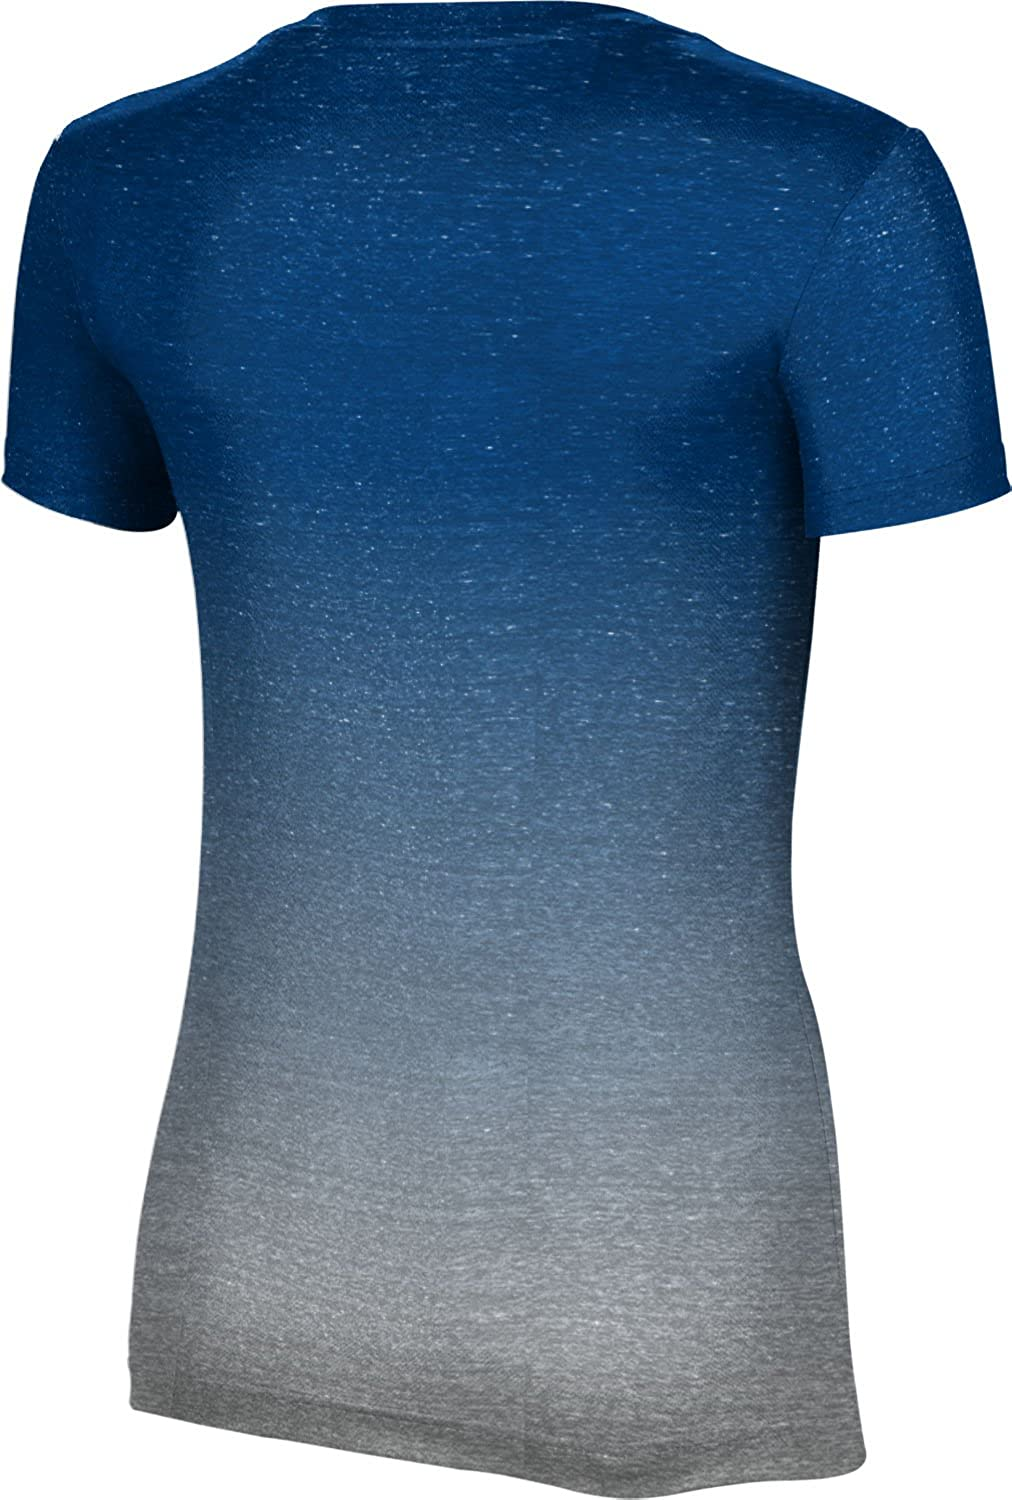 ProSphere University of Wisconsin-Stout College Girls Performance T-Shirt Ombre